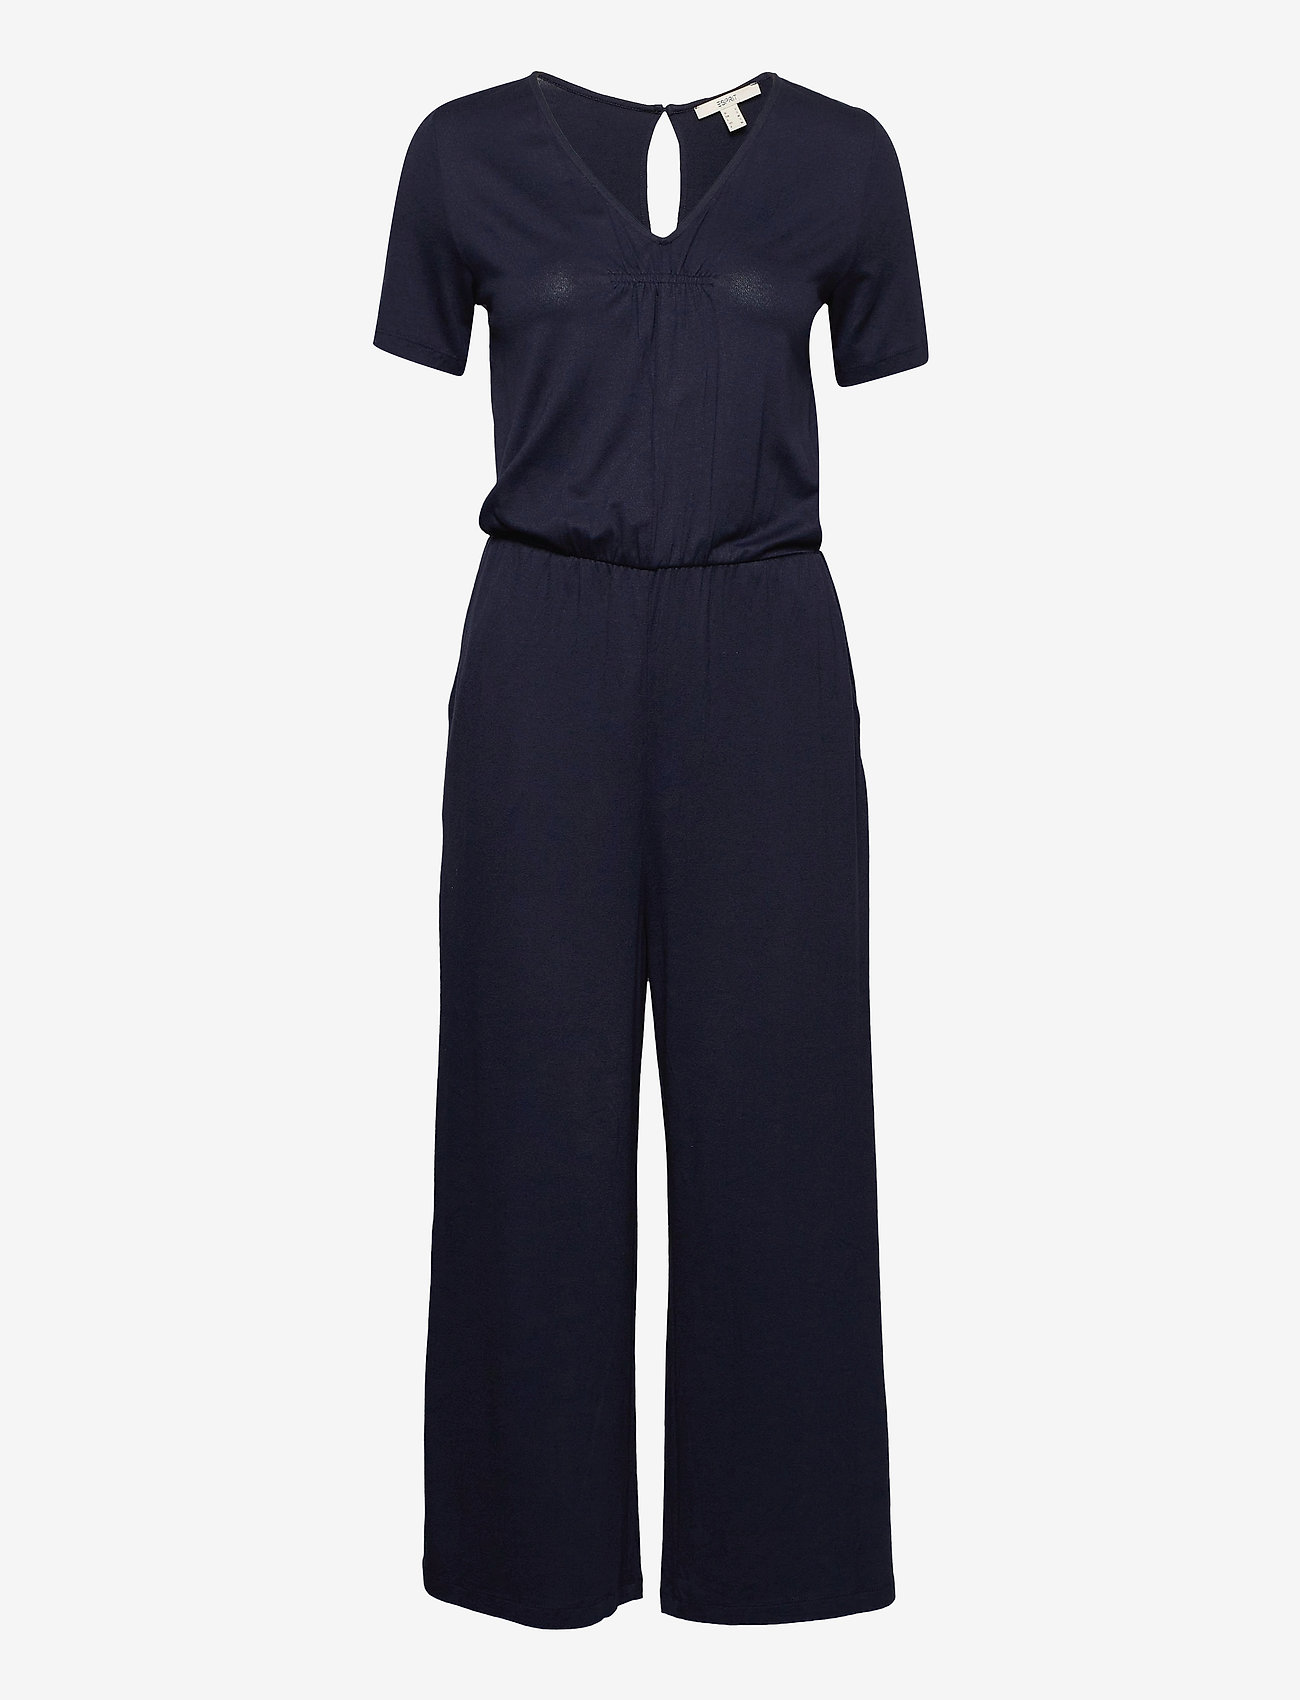 Esprit Casual - Overalls knitted - kleding - navy - 0